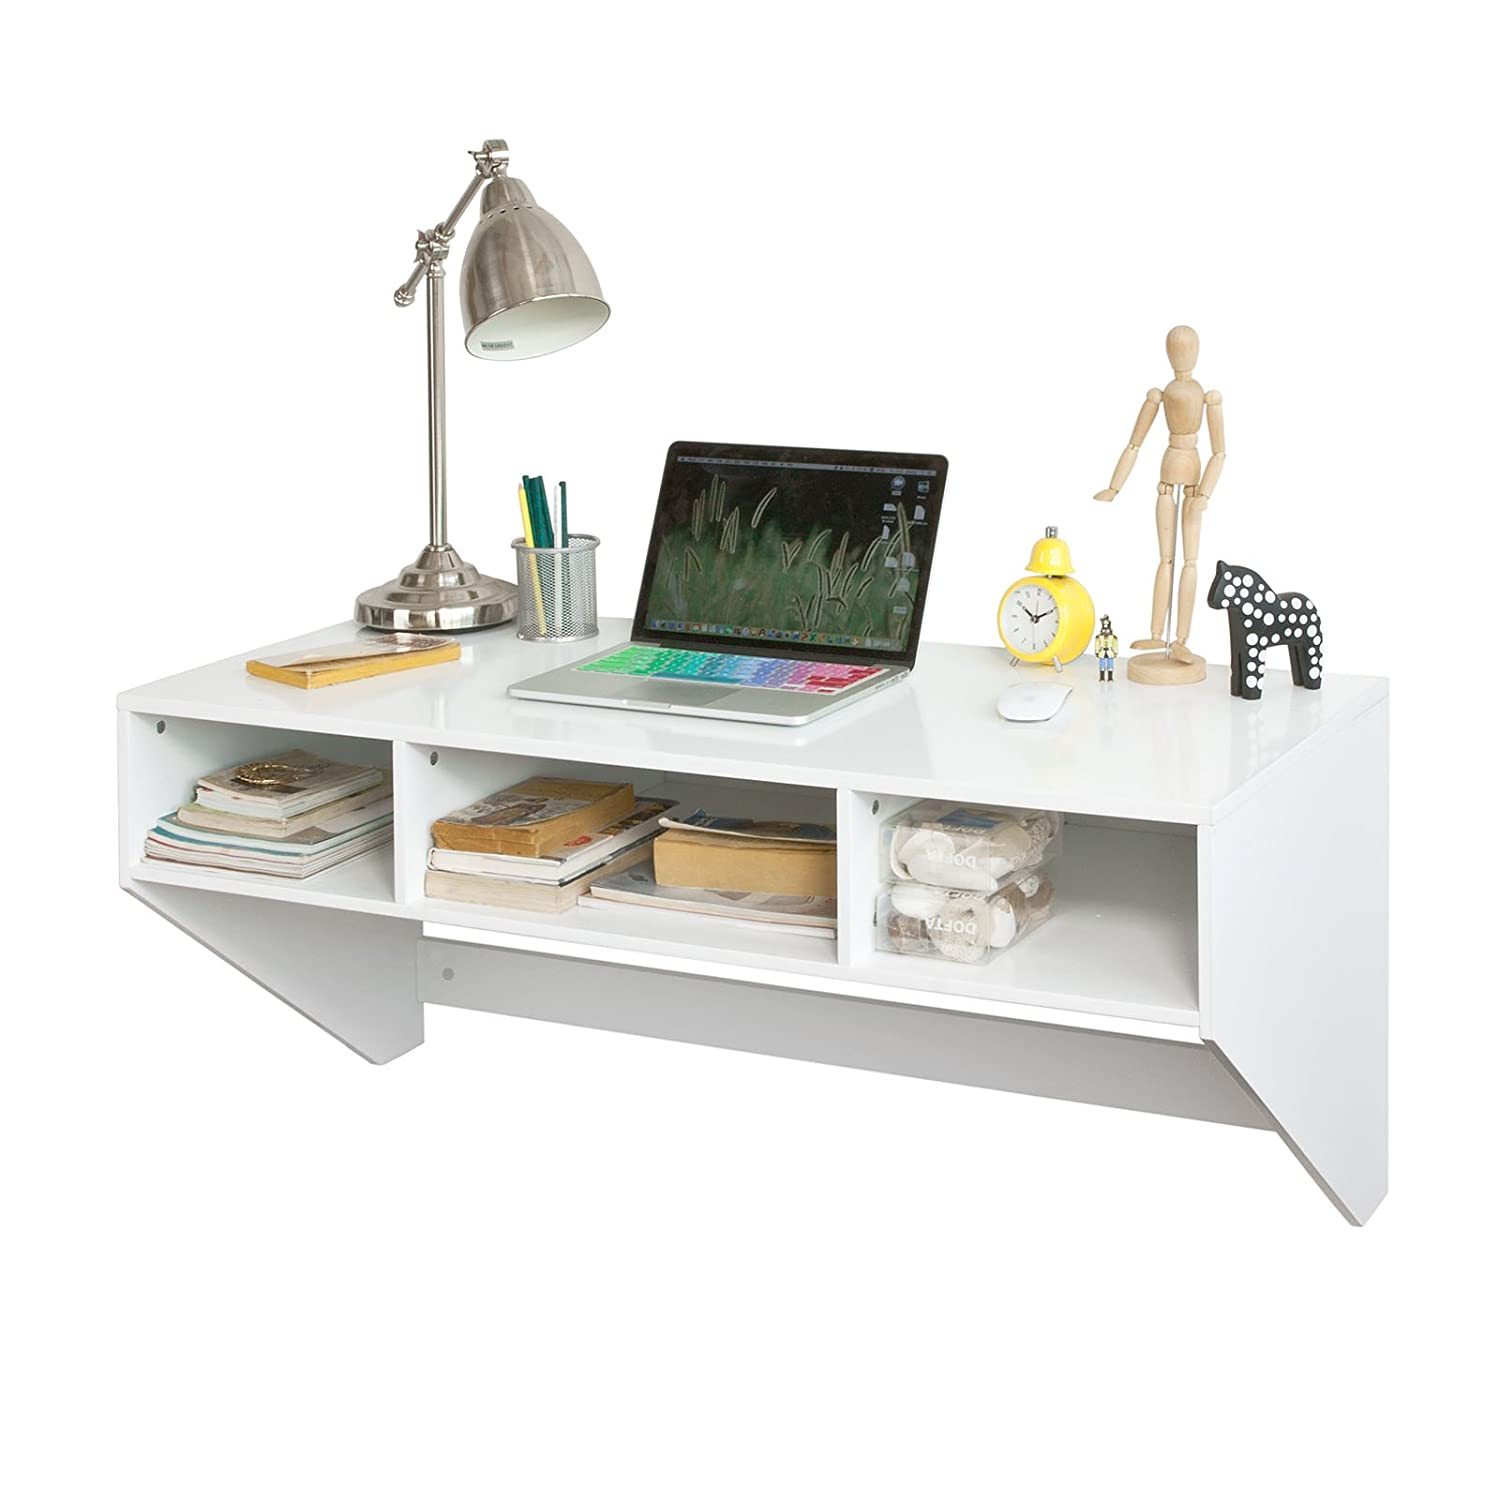 wall office desk. SoBuy® White Wall-mounted Table Desk With 3 Drawers, Home Office Workstation, W90 X D48cm, FWT14-W Wall W